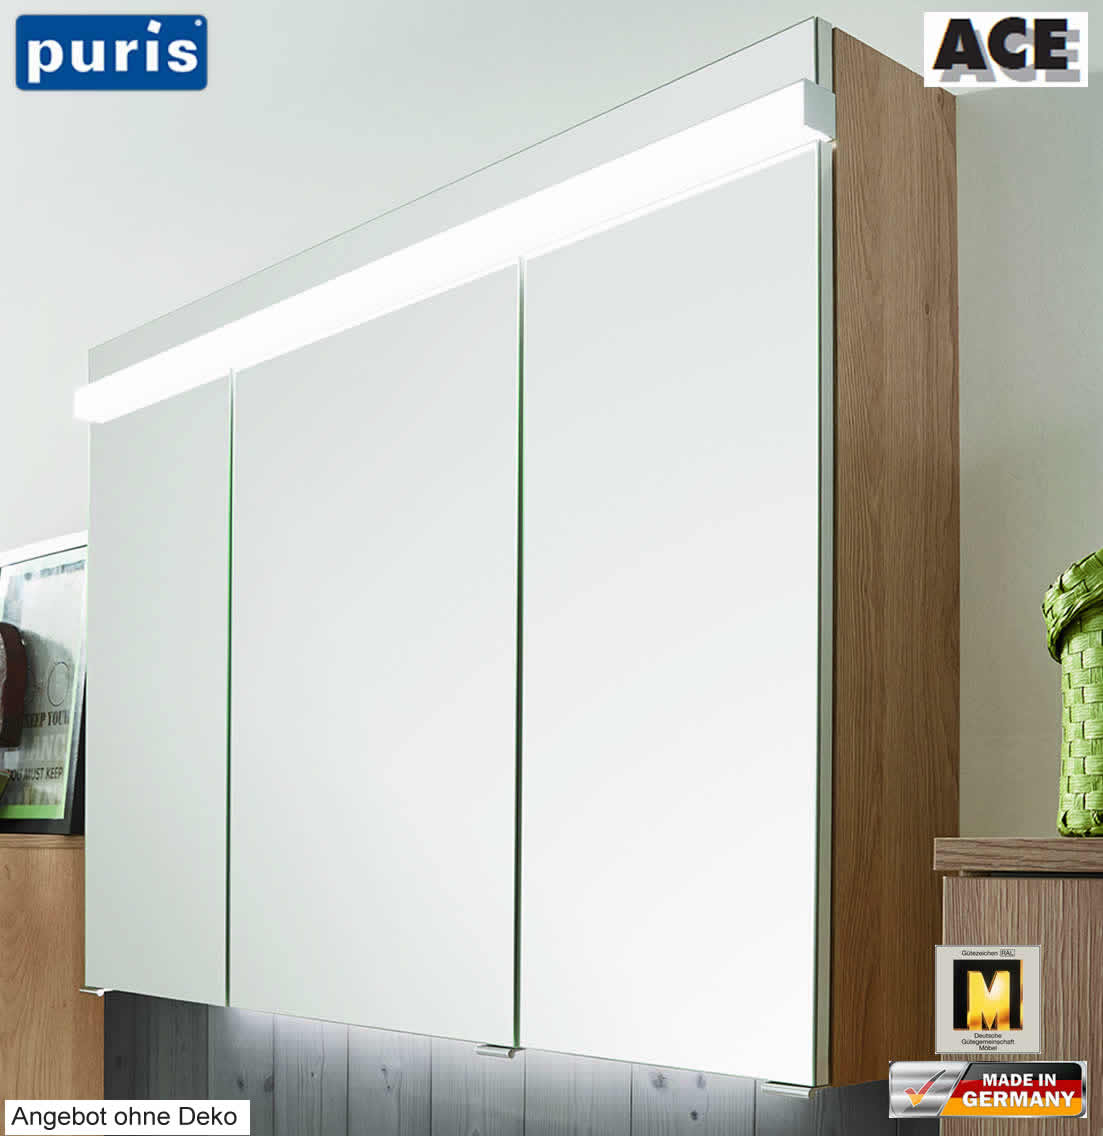 puris ace spiegelschrank 100 cm mit led beleuchtung. Black Bedroom Furniture Sets. Home Design Ideas